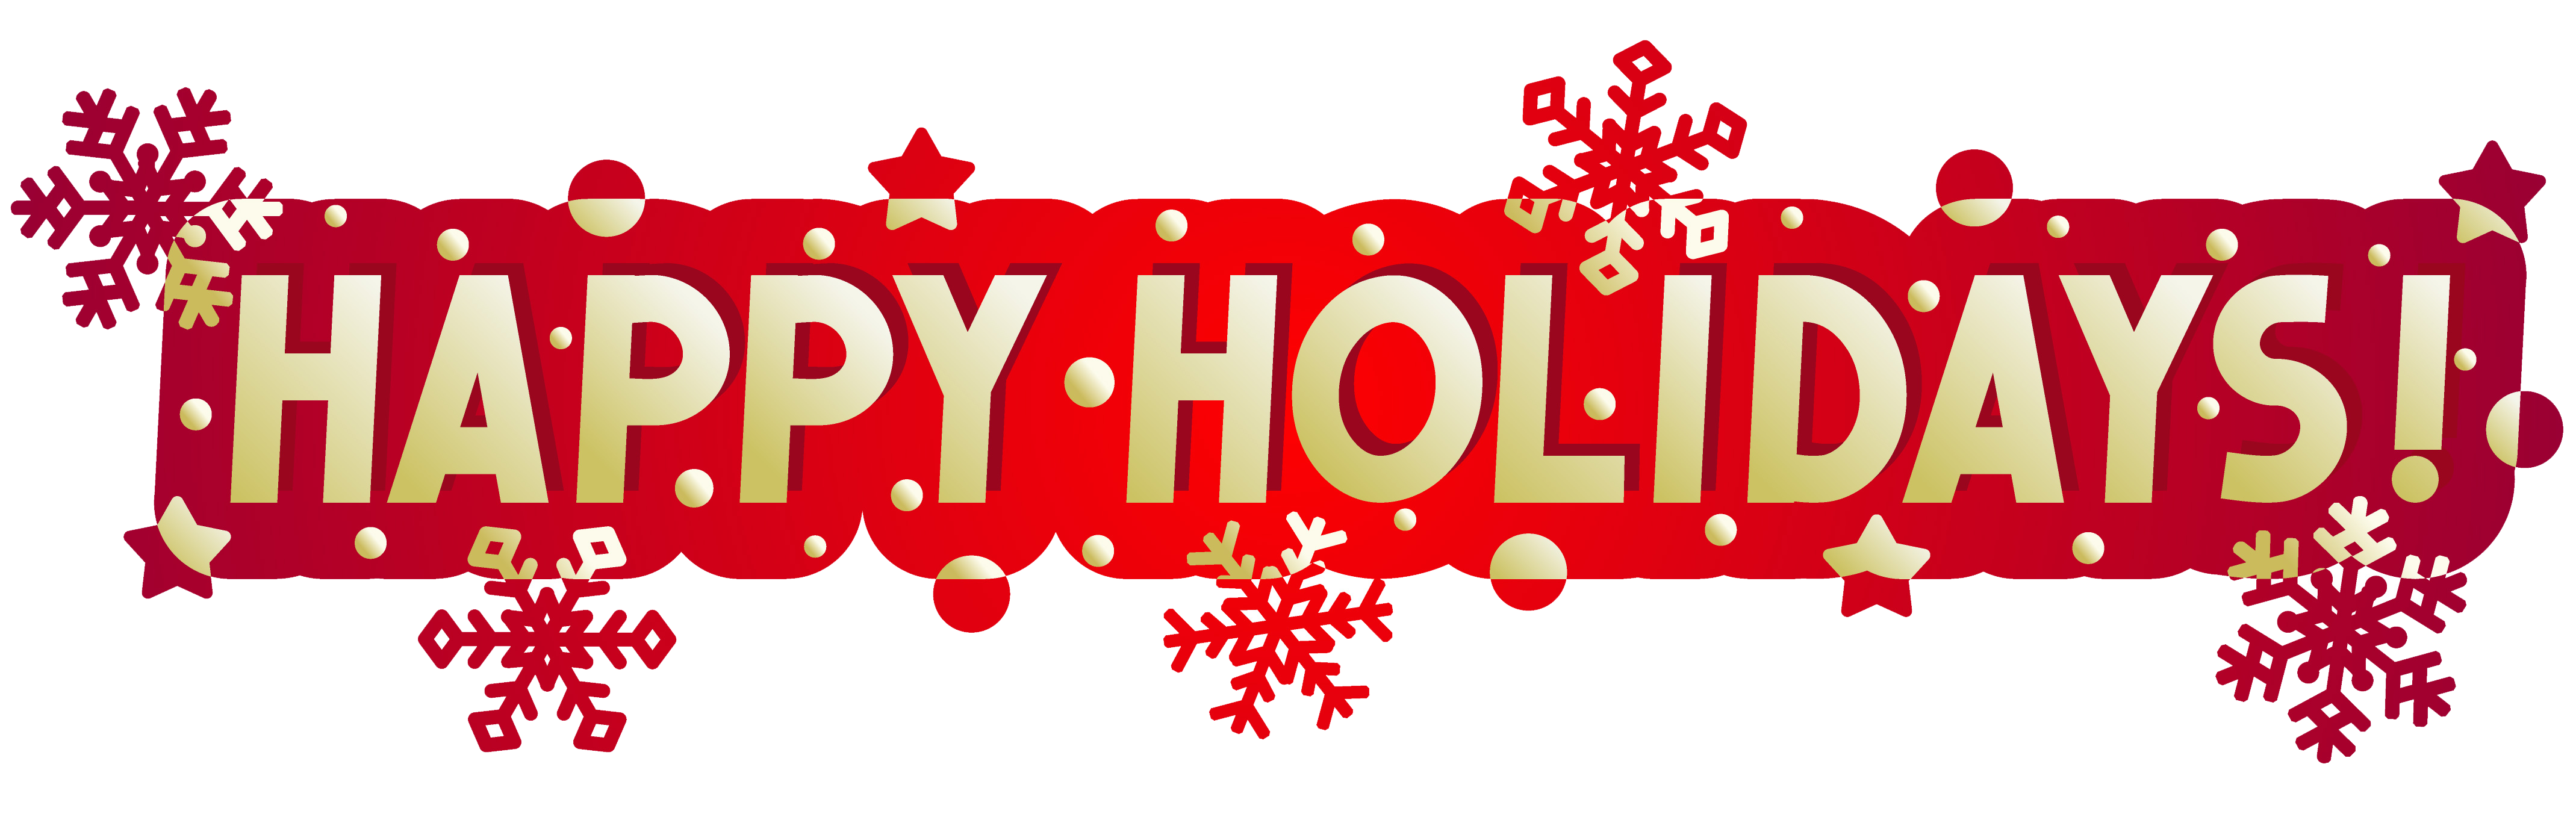 Happy holidays clip art banner.